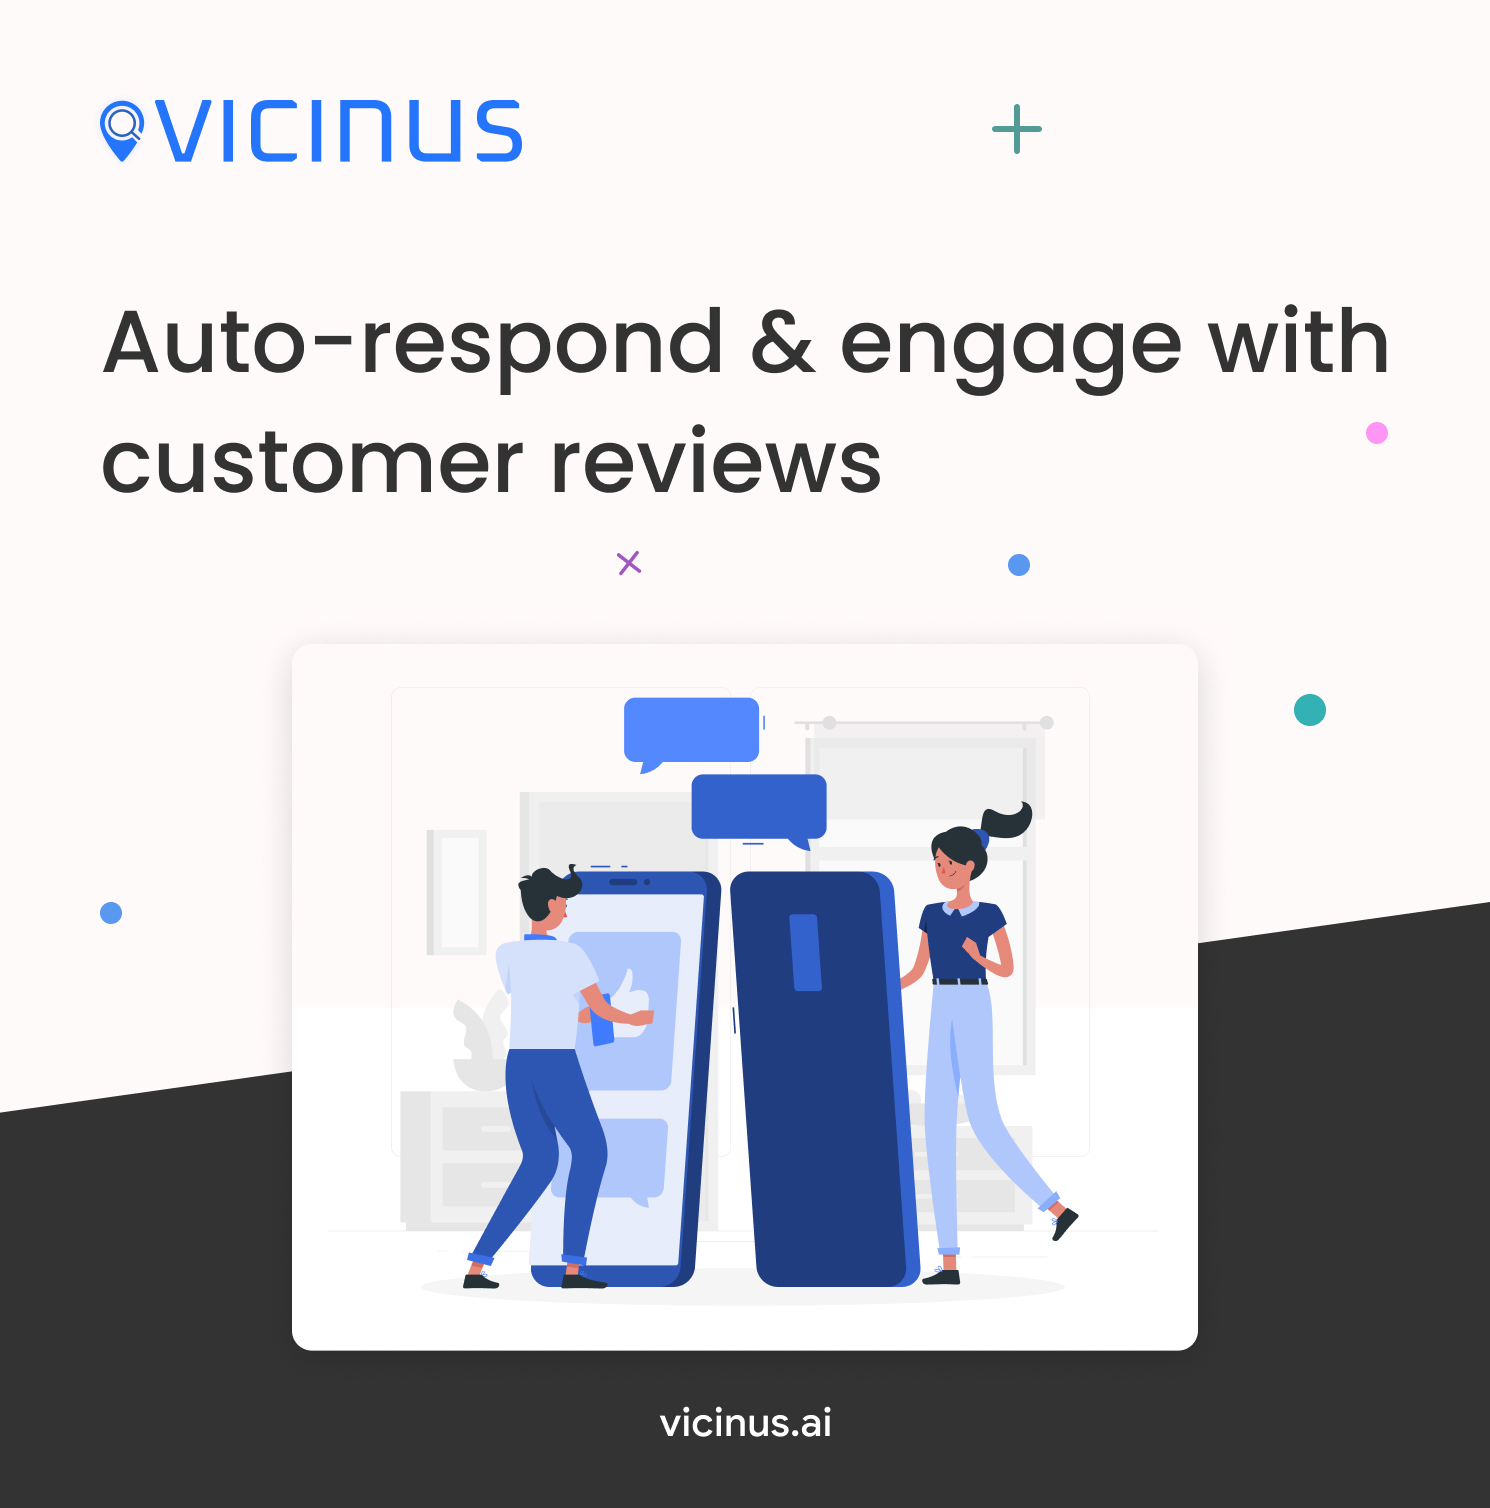 Auto-respond and engage with customer reviews graphic. Graphic shows two cartoon people standing next to mobile phones typing and leaving comments.